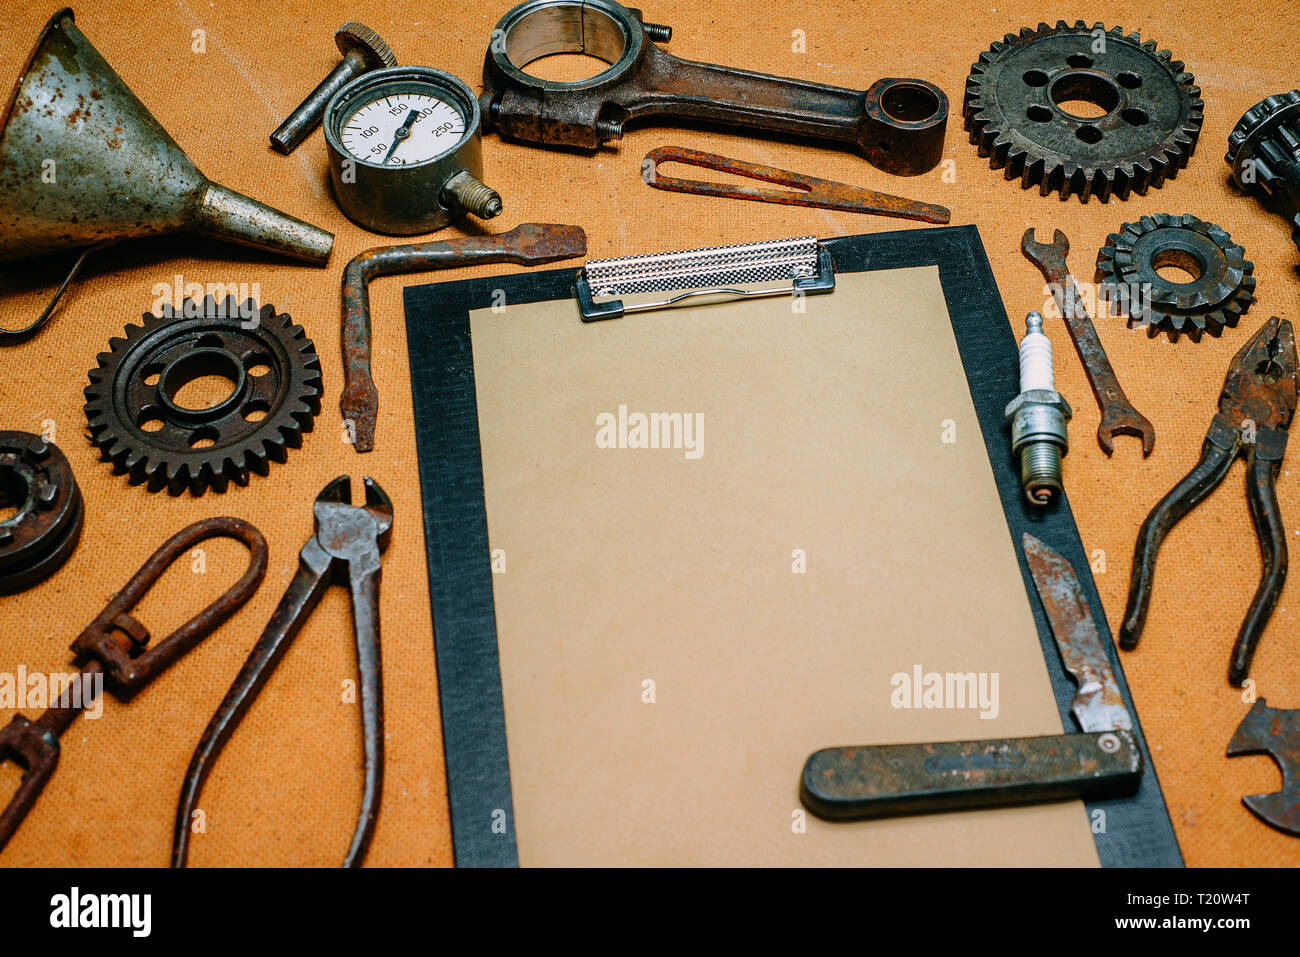 Clipboard with paper for your info in the center of rusty tools, gears on vintage fiberboard background. Motorcycle equipment and repair template. Stock Photo